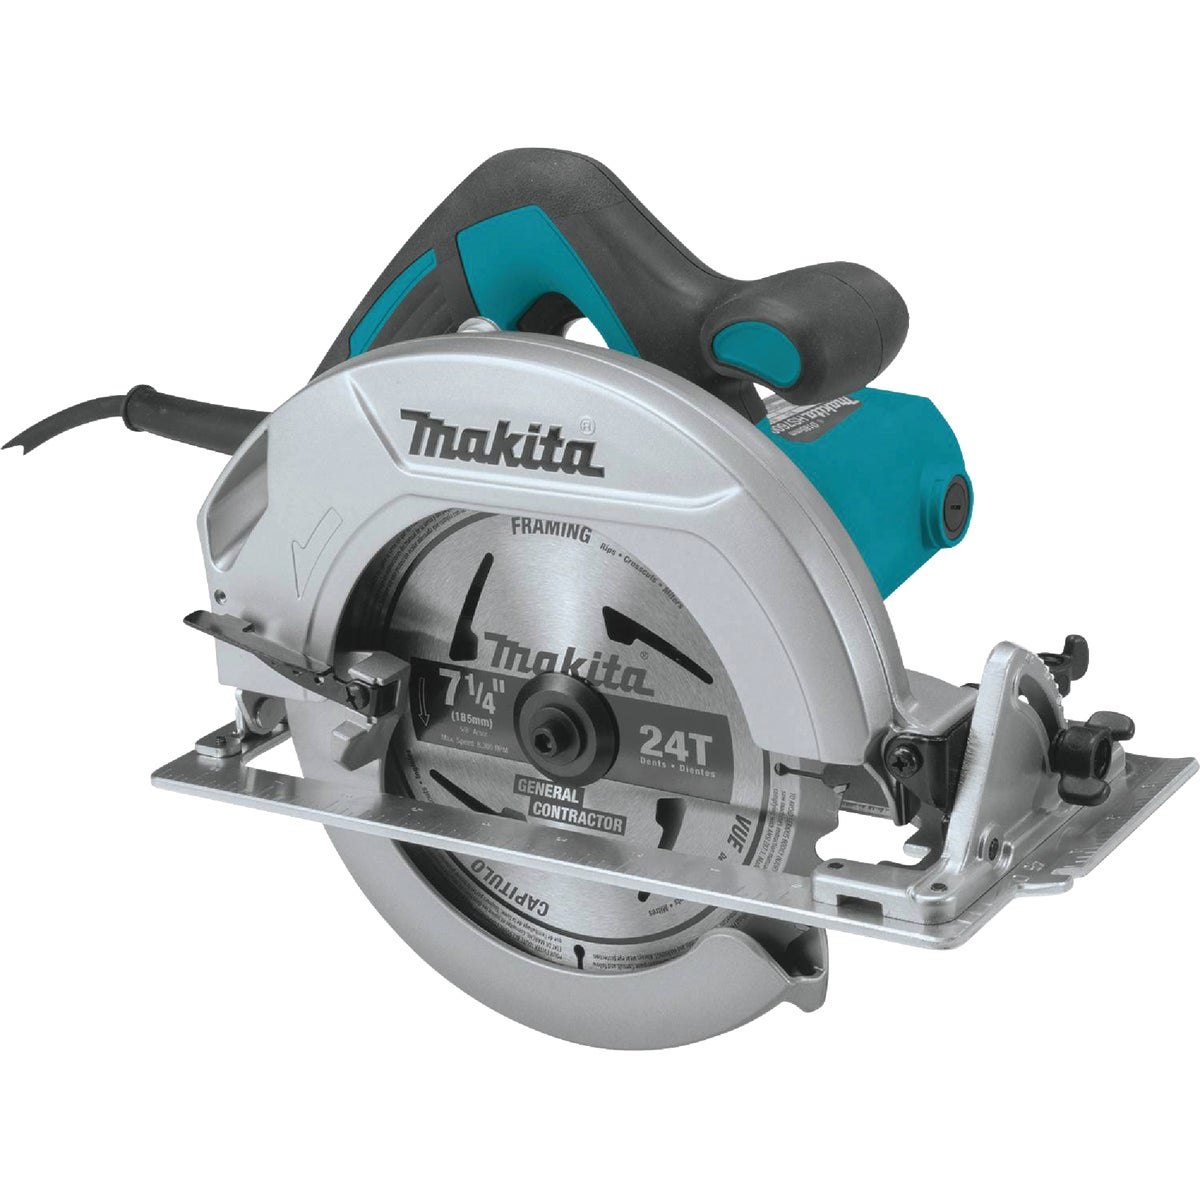 "7-1/4""10.5A CIRCULAR SAW - 5740NB by Makita Usa Inc"